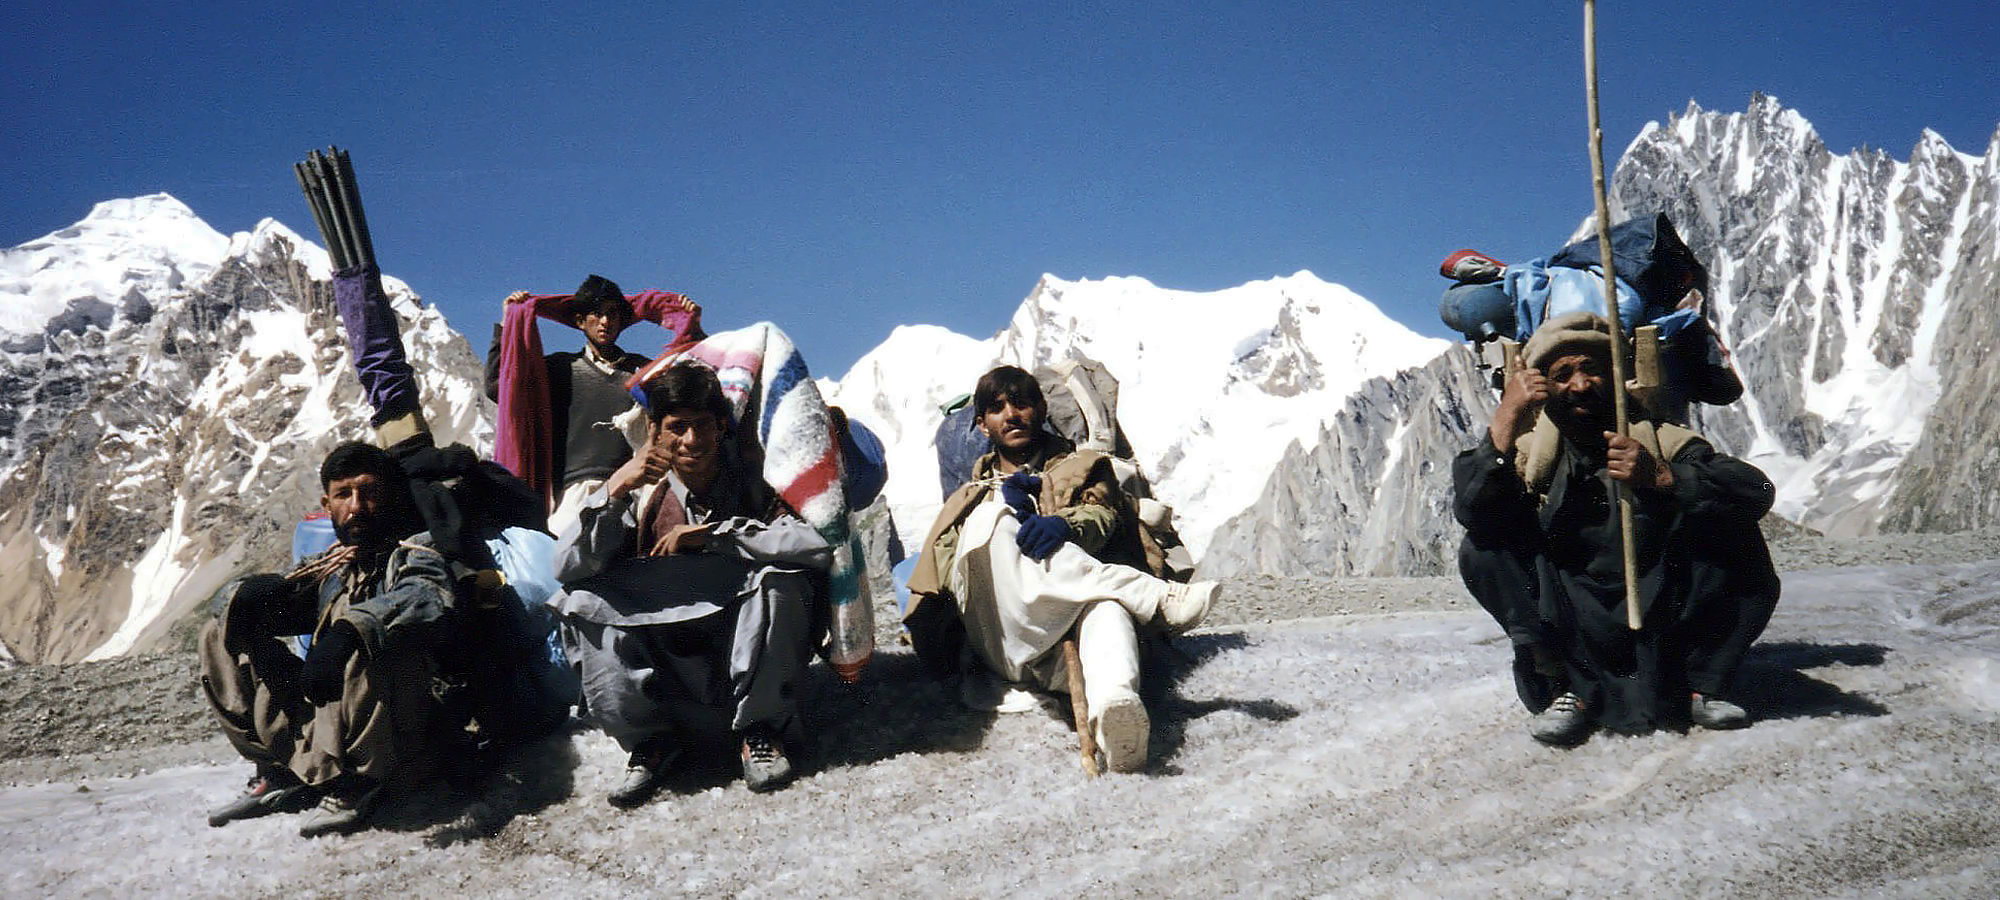 Trekking in the Karakoram Ranges